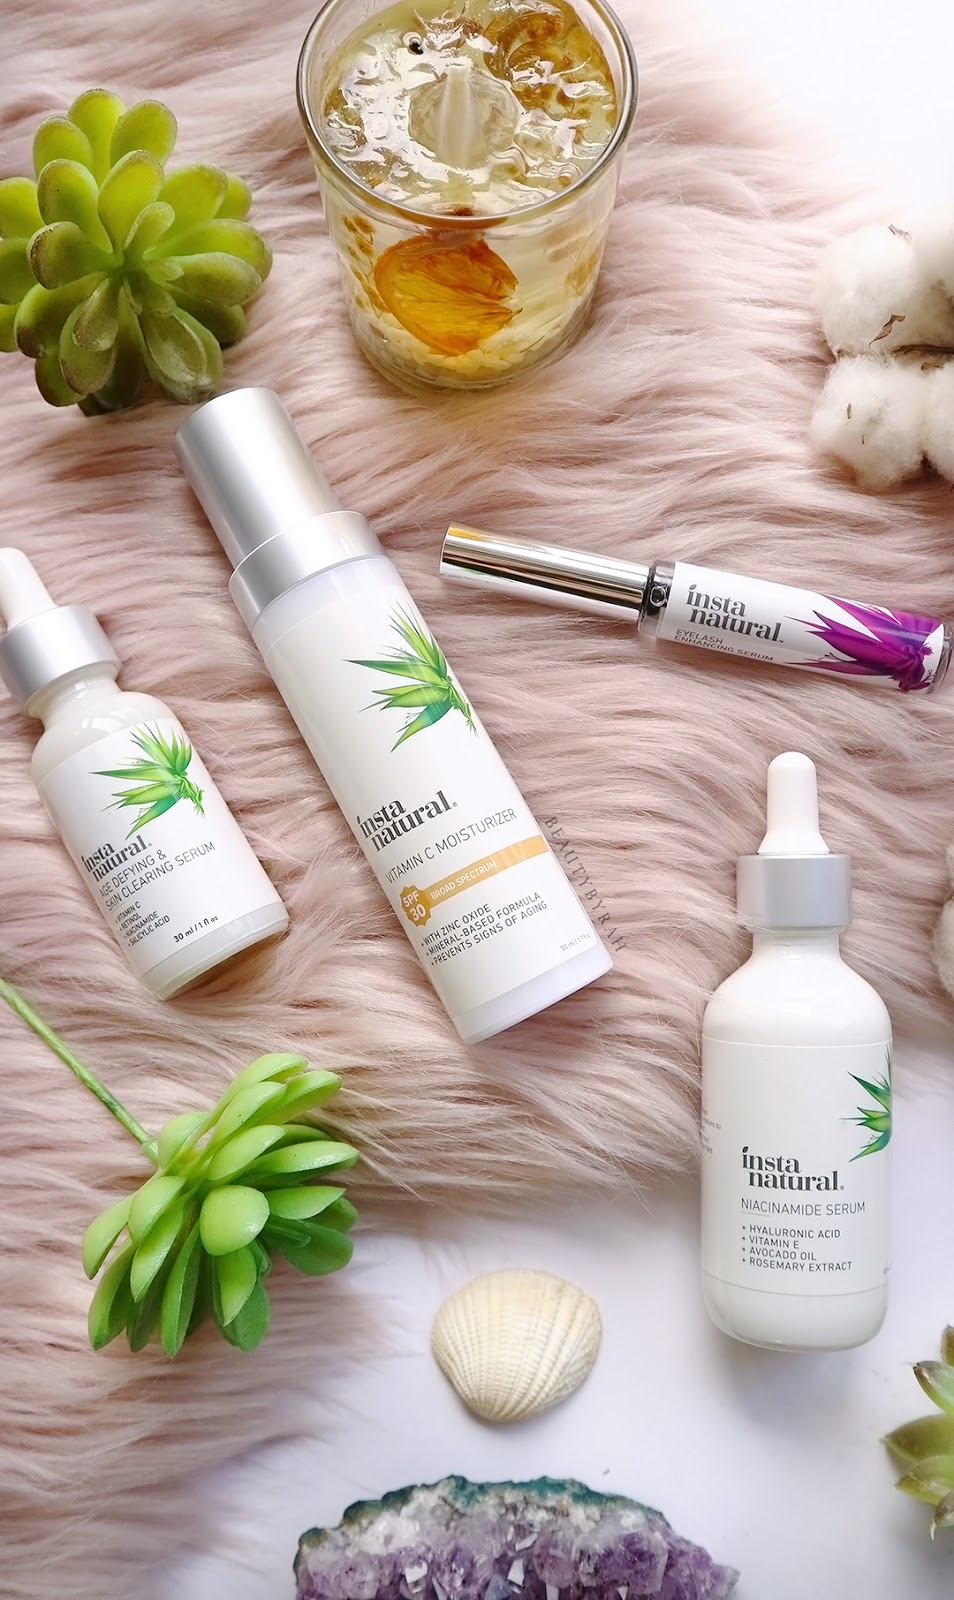 InstaNatural skincare from iHerb review